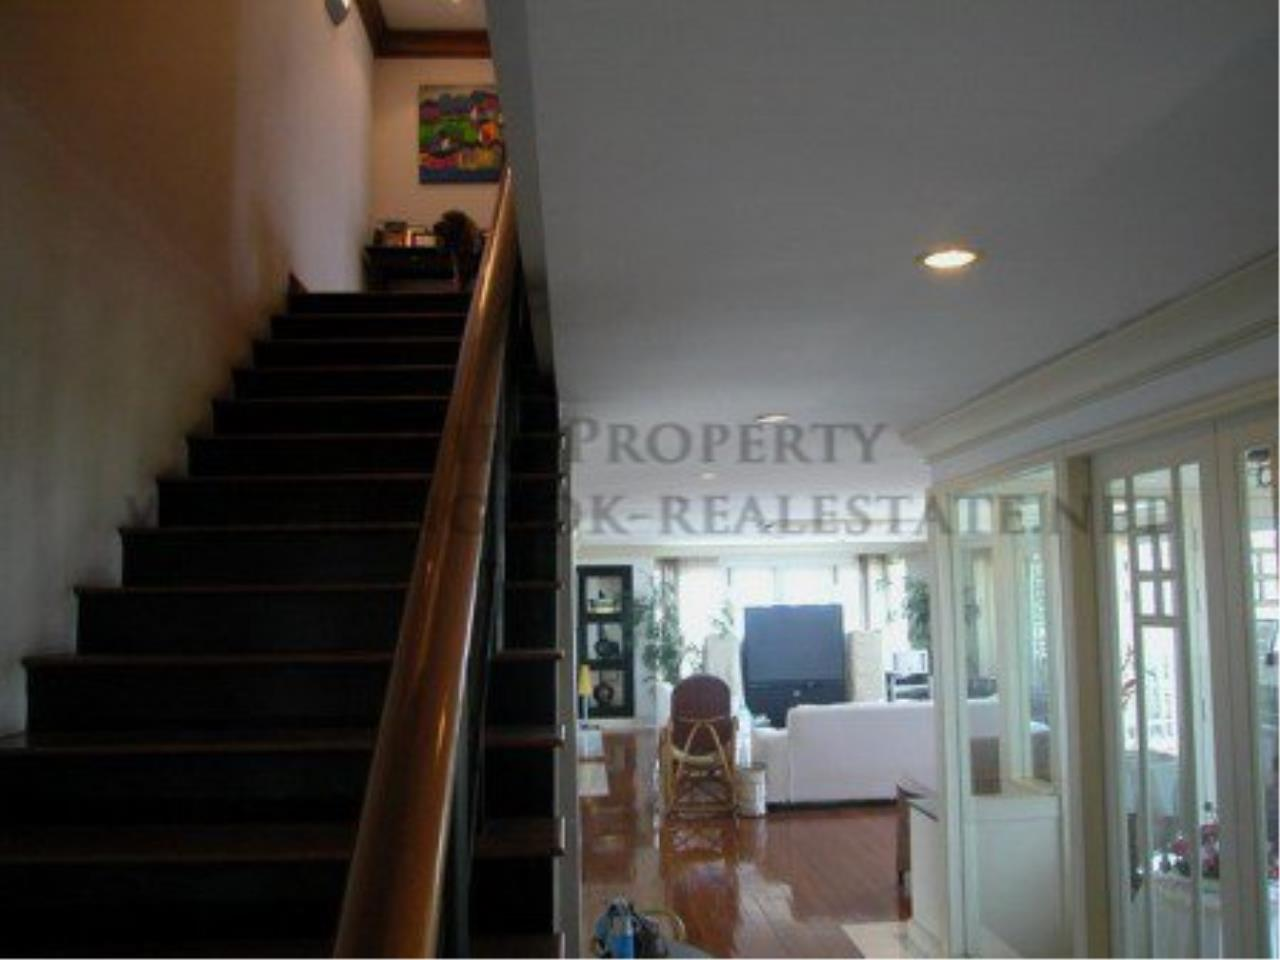 Piri Property Agency's Spacious Duplex Penthouse Condo in Sathorn with more than 400 SQM 6